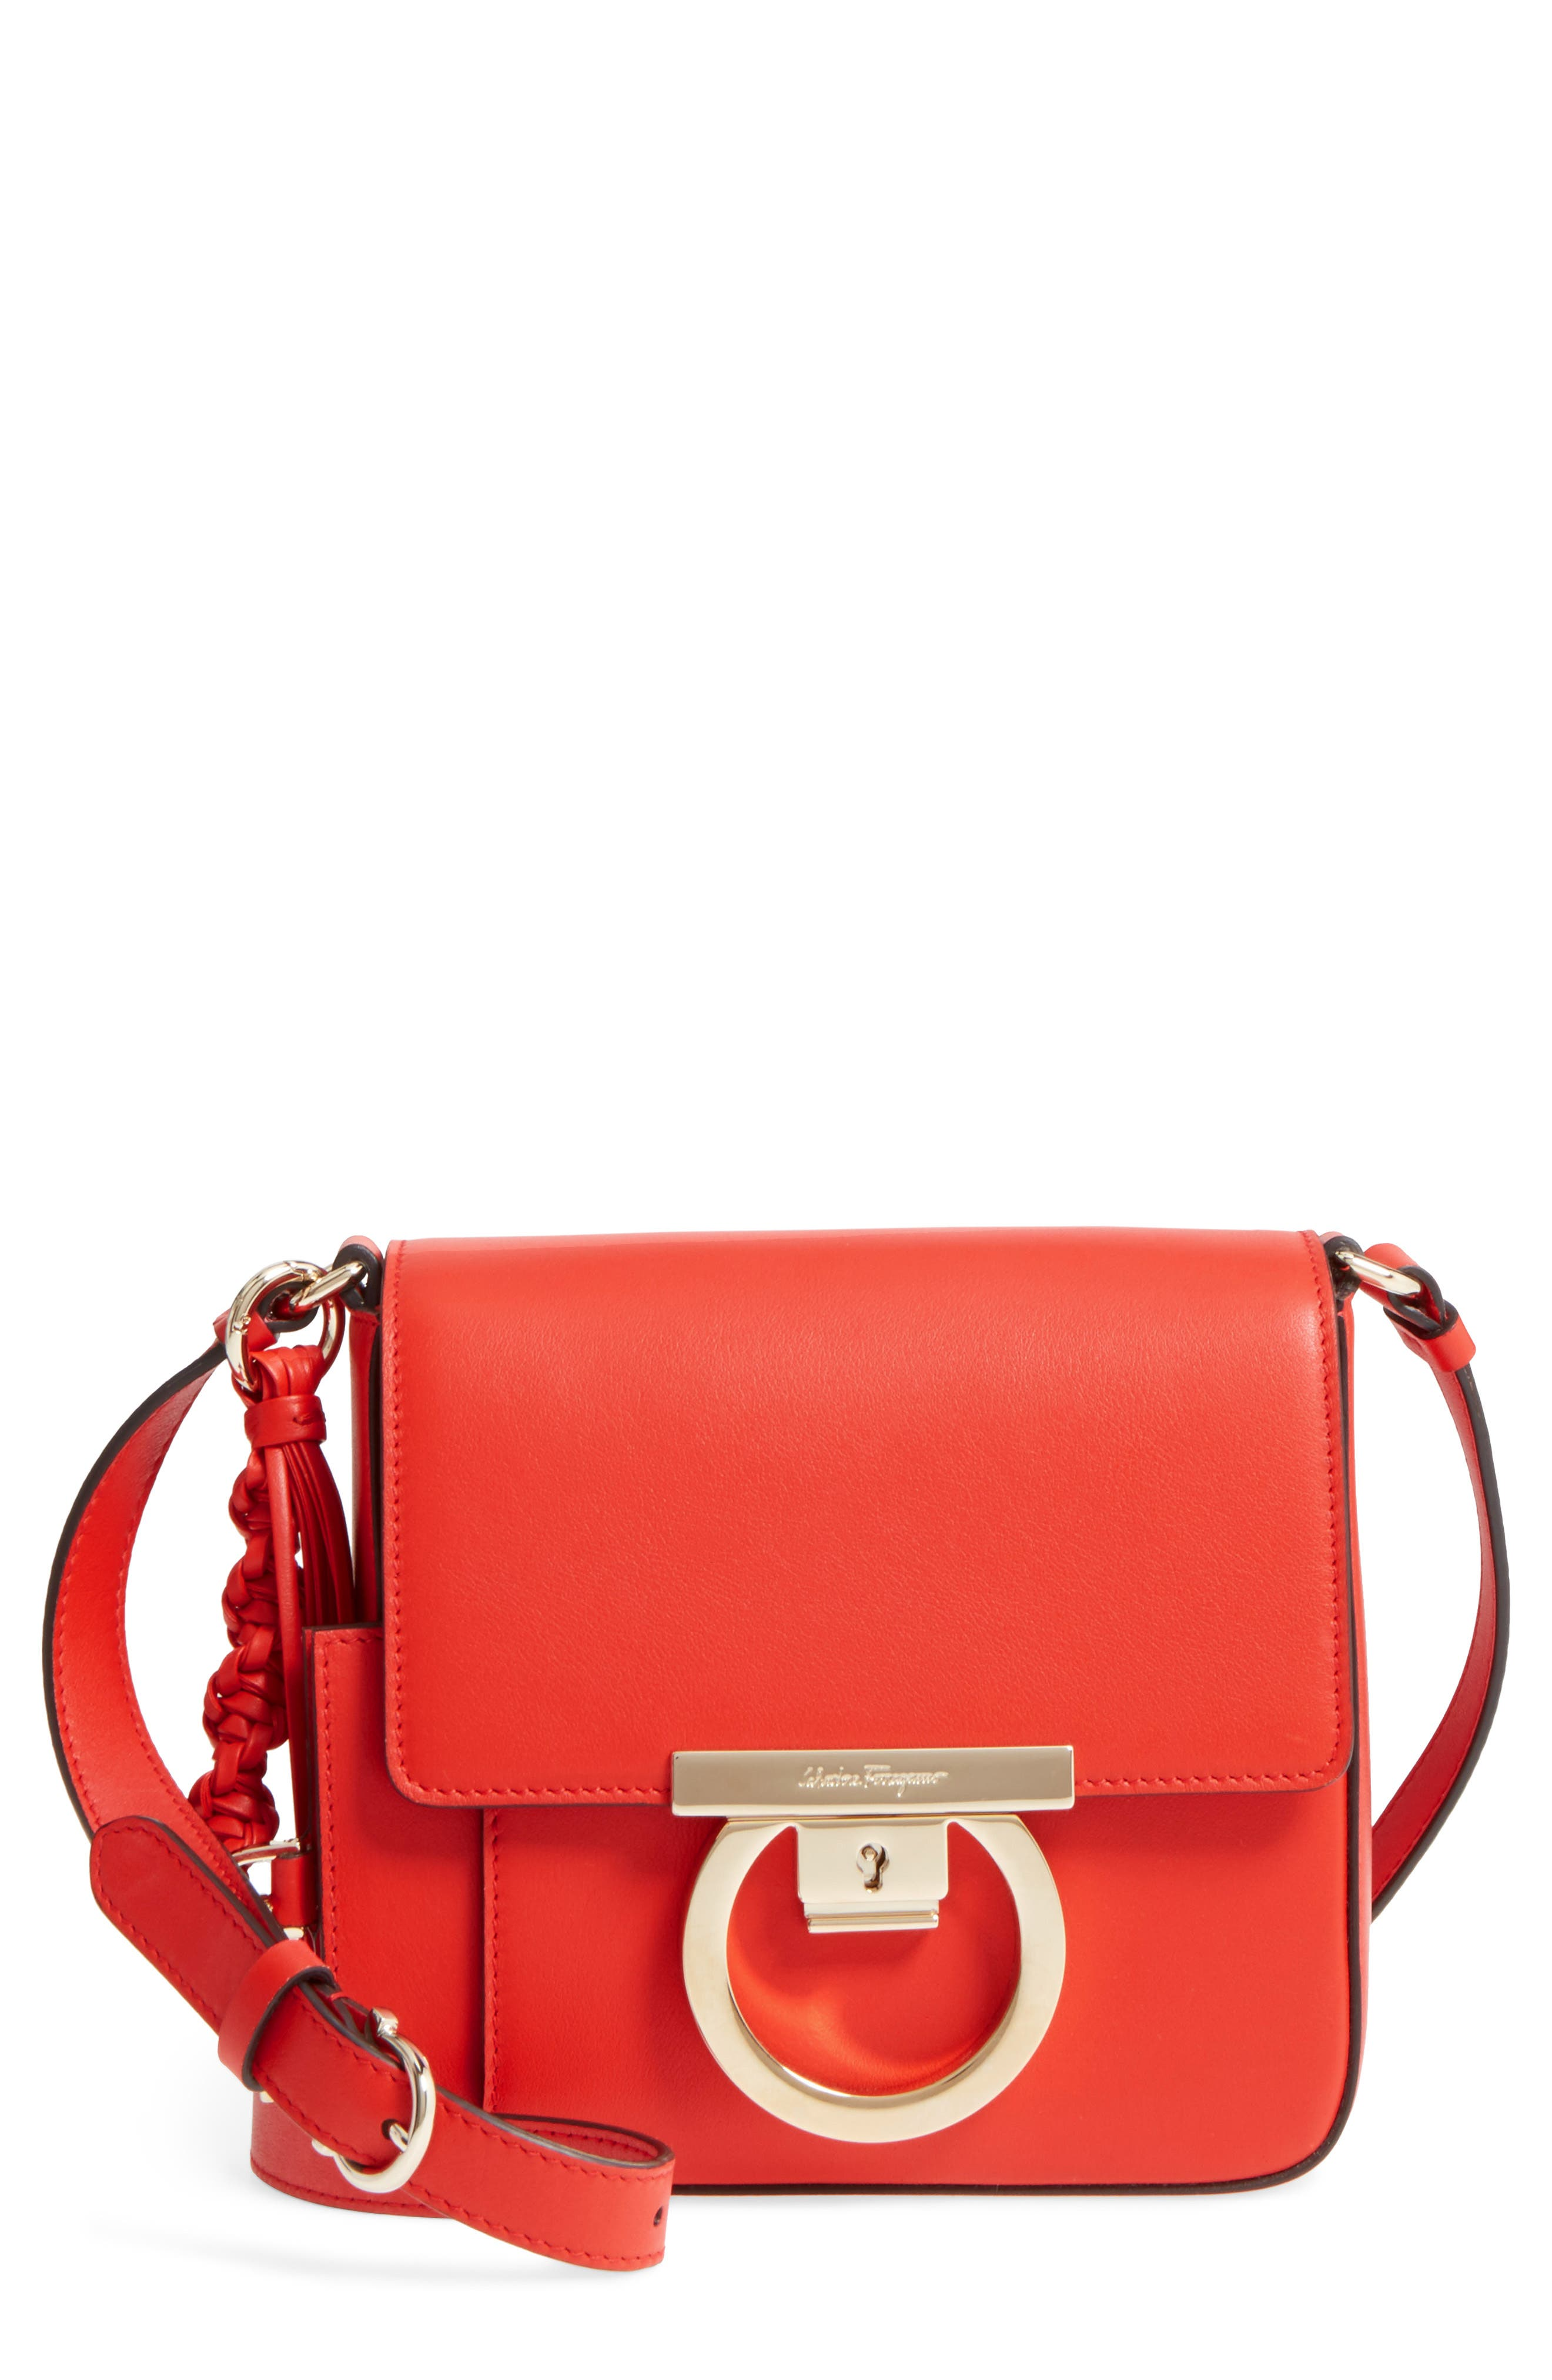 Gancio Lock Leather Crossbody Bag,                             Main thumbnail 1, color,                             950